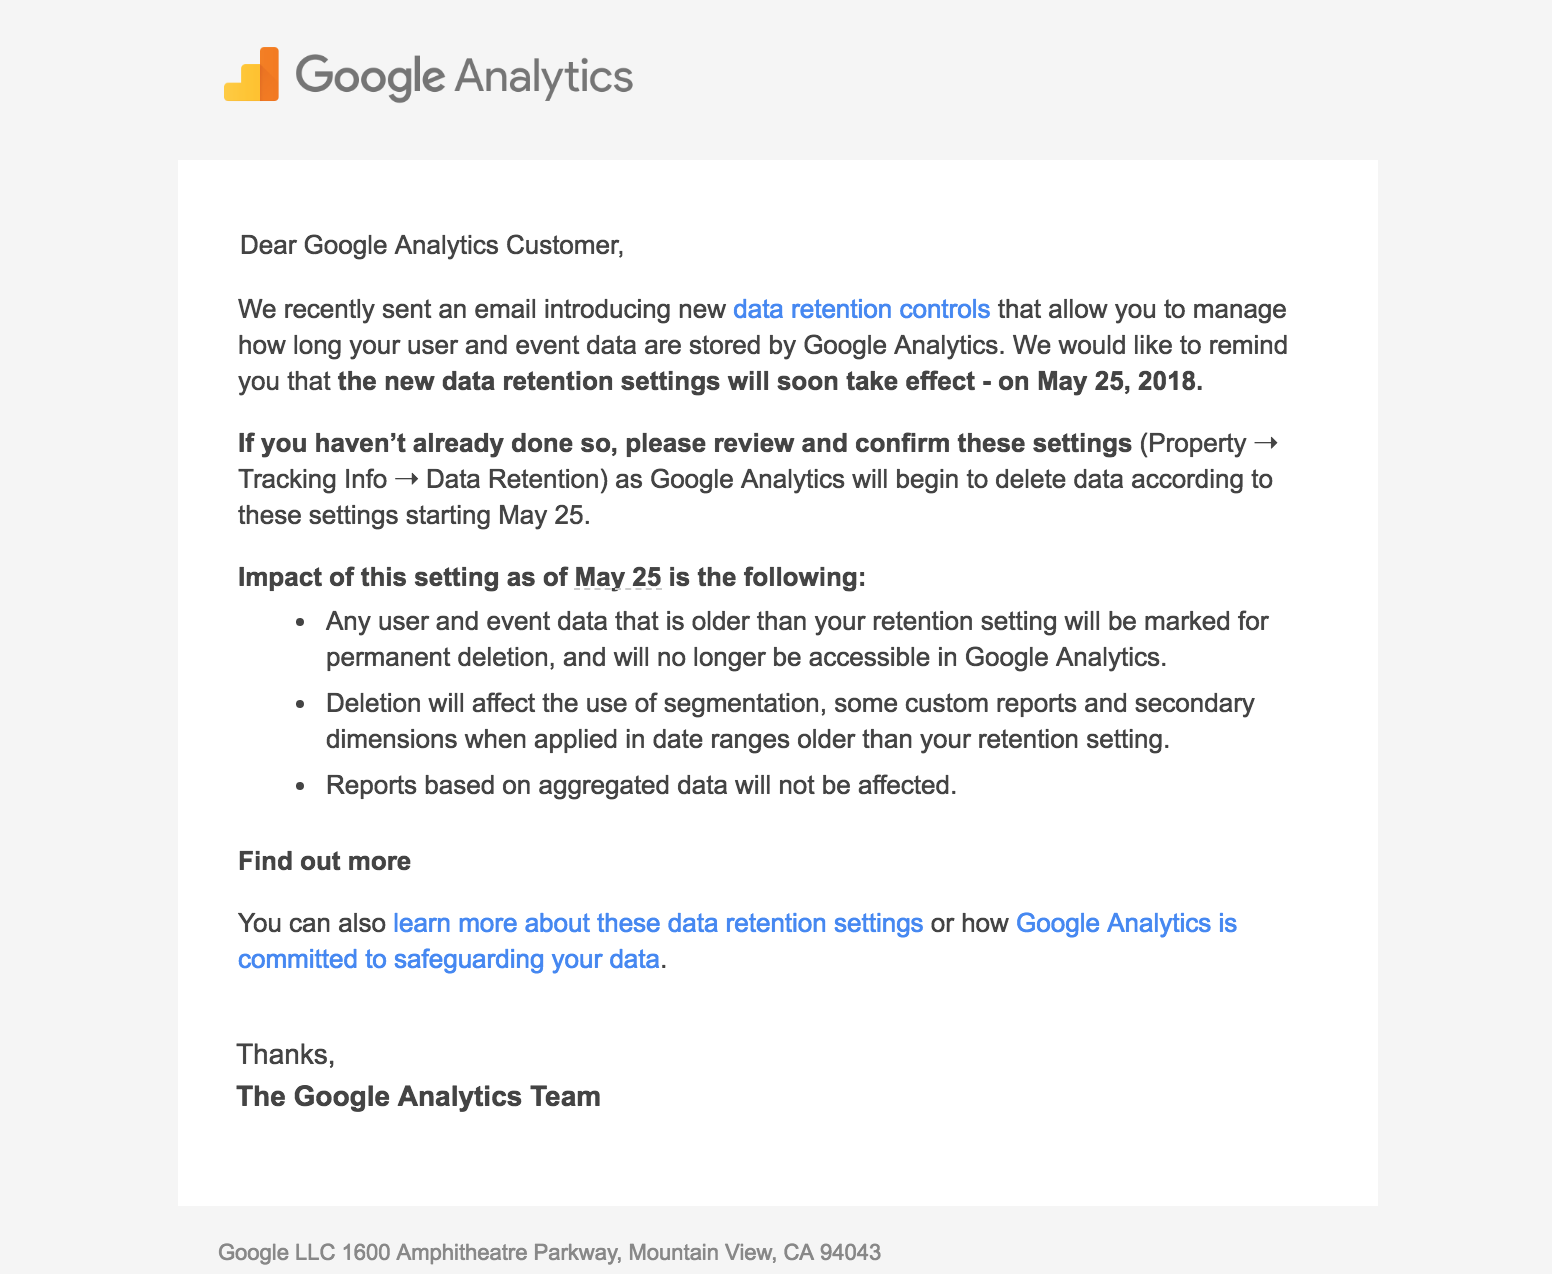 Email regarding Google Analytics Data Retention settings